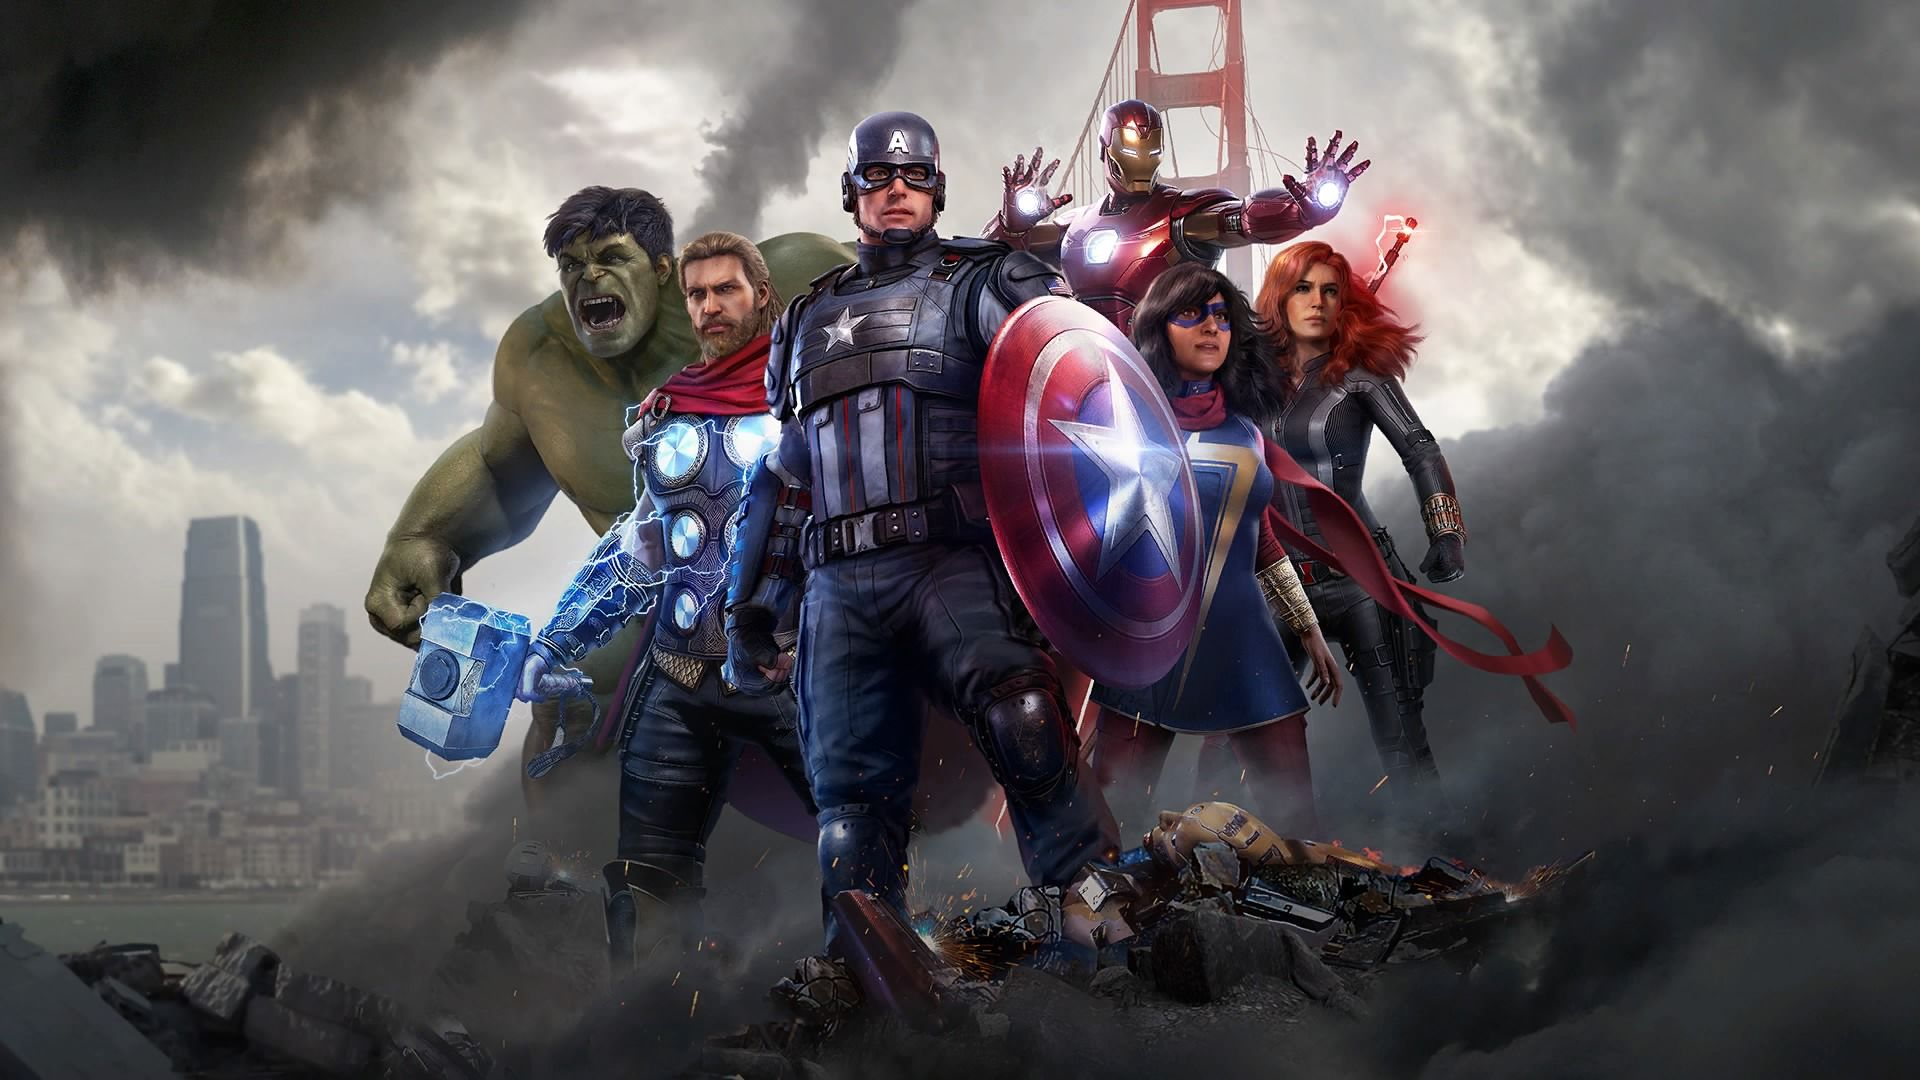 Análisis] Marvel's Avengers - All Gamers In - PS4, Xbox One, Stadia, PC